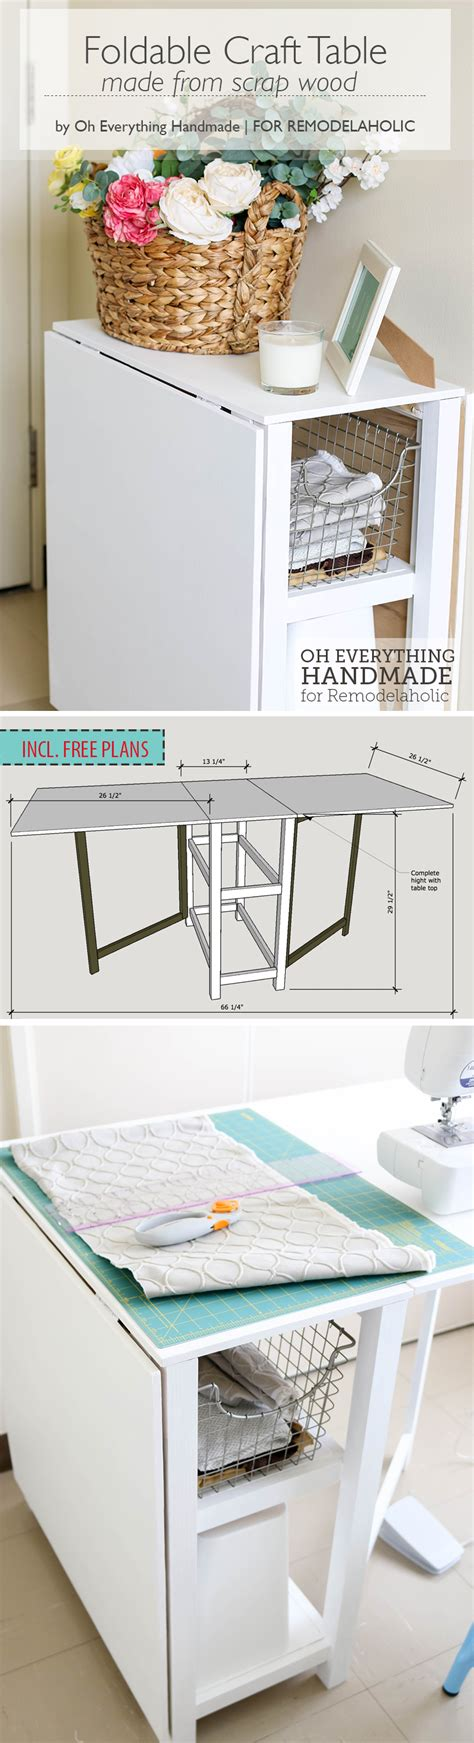 diy folding sewing table diy foldable craft table